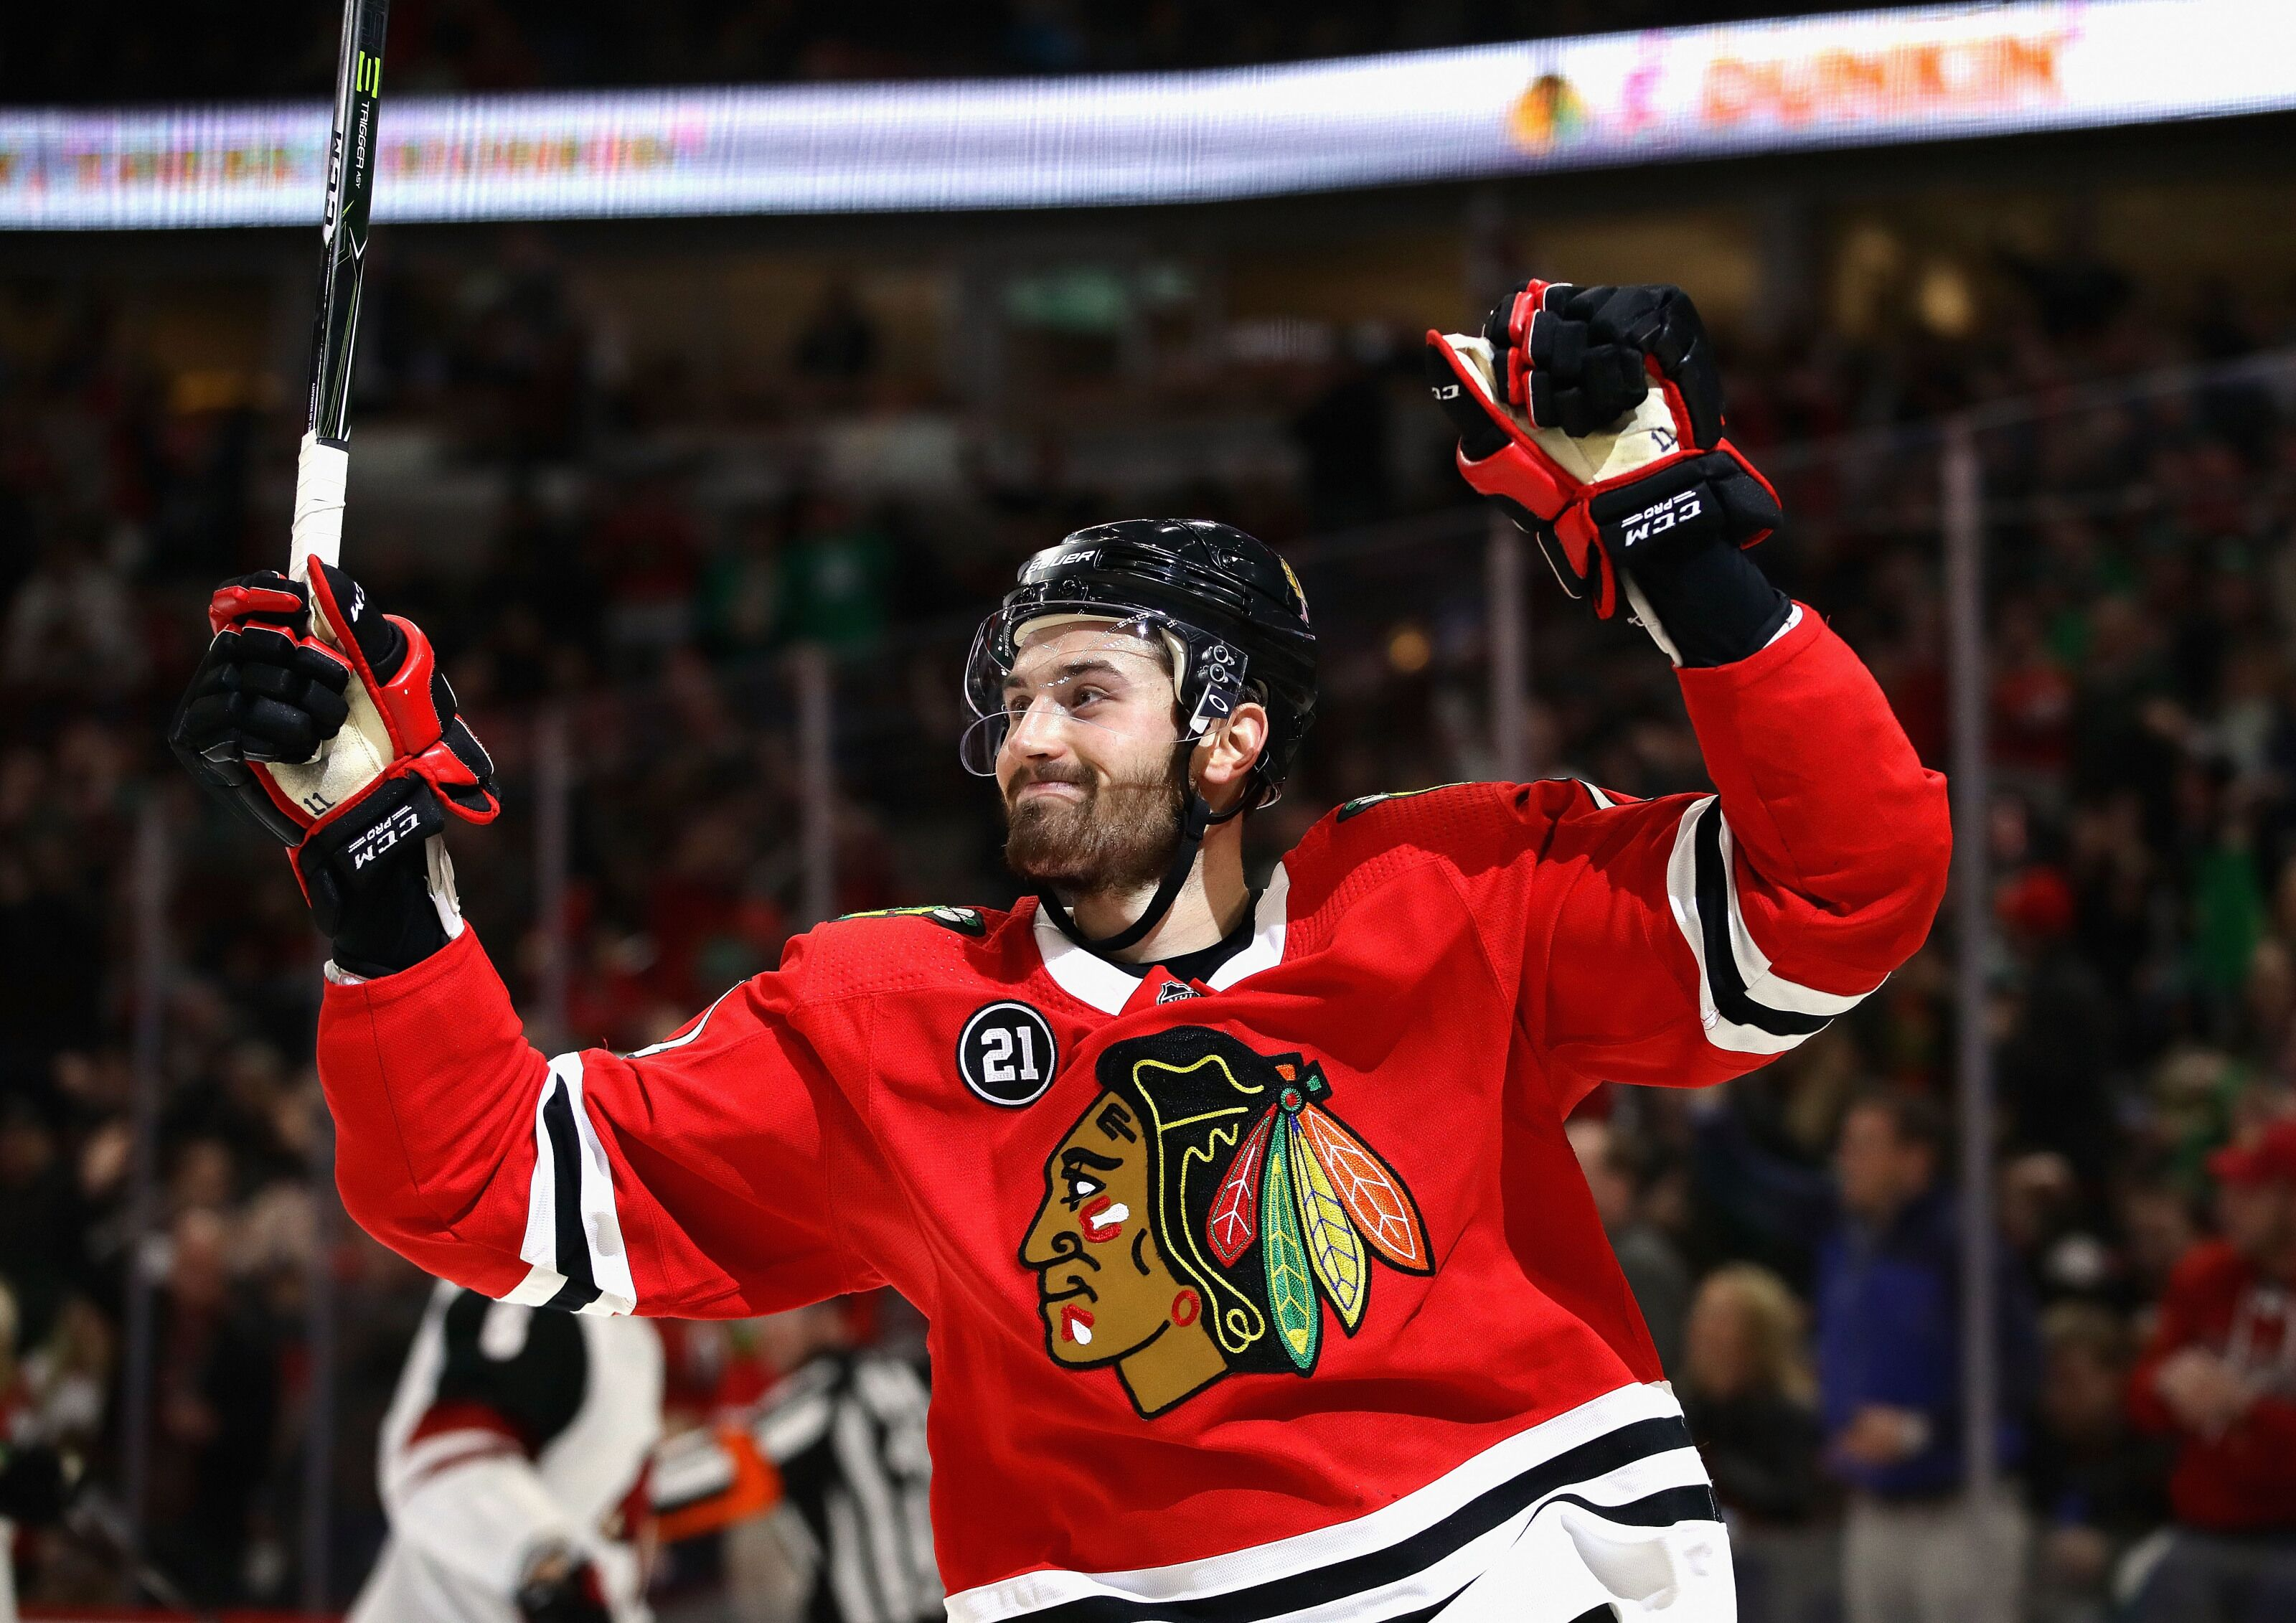 The Chicago Blackhawks should sign Perlini to an extension